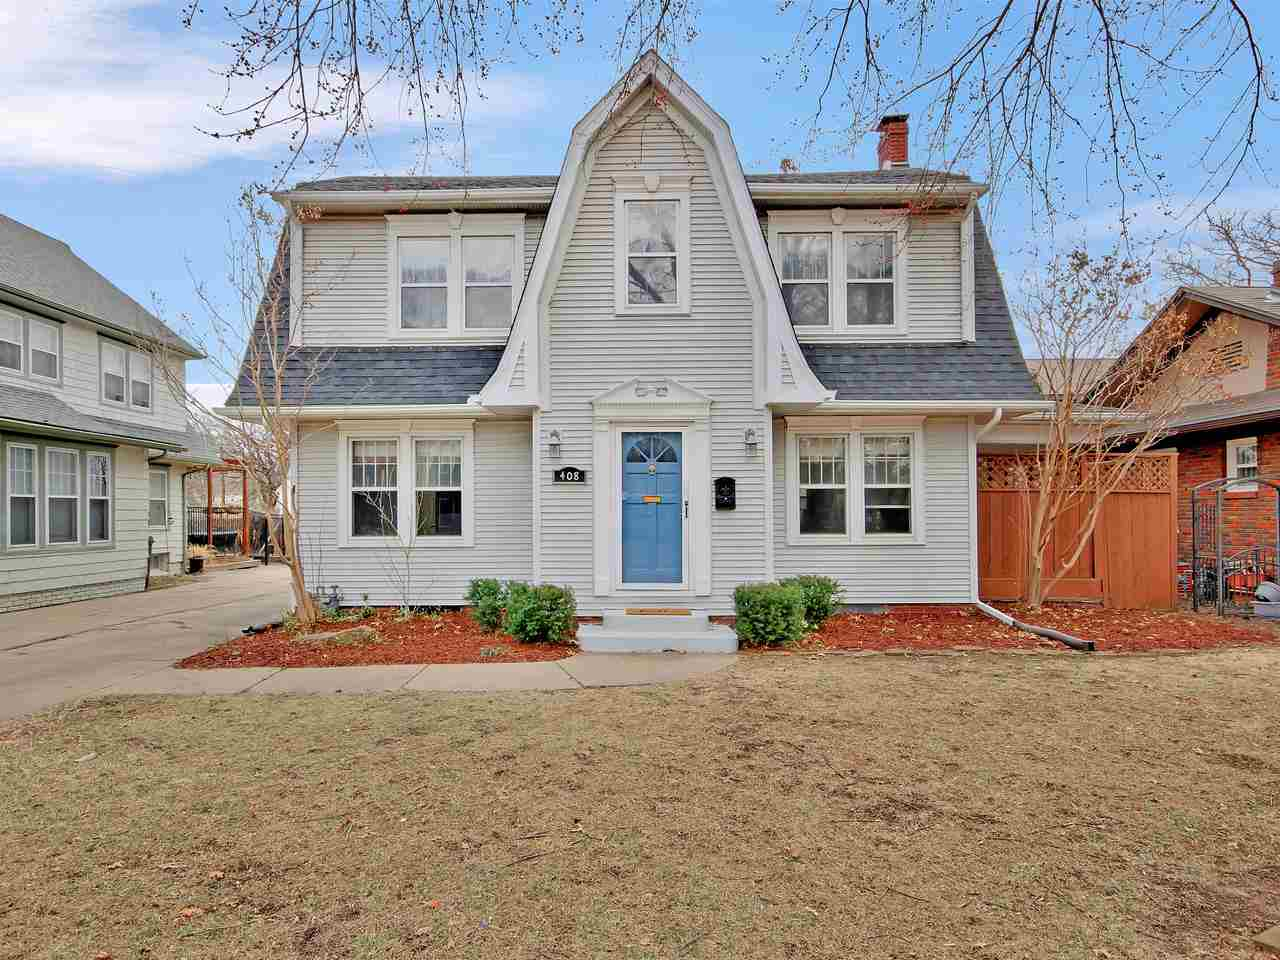 Check out this CHARMING new listing in College Hill. It features ALL the character you've been looki